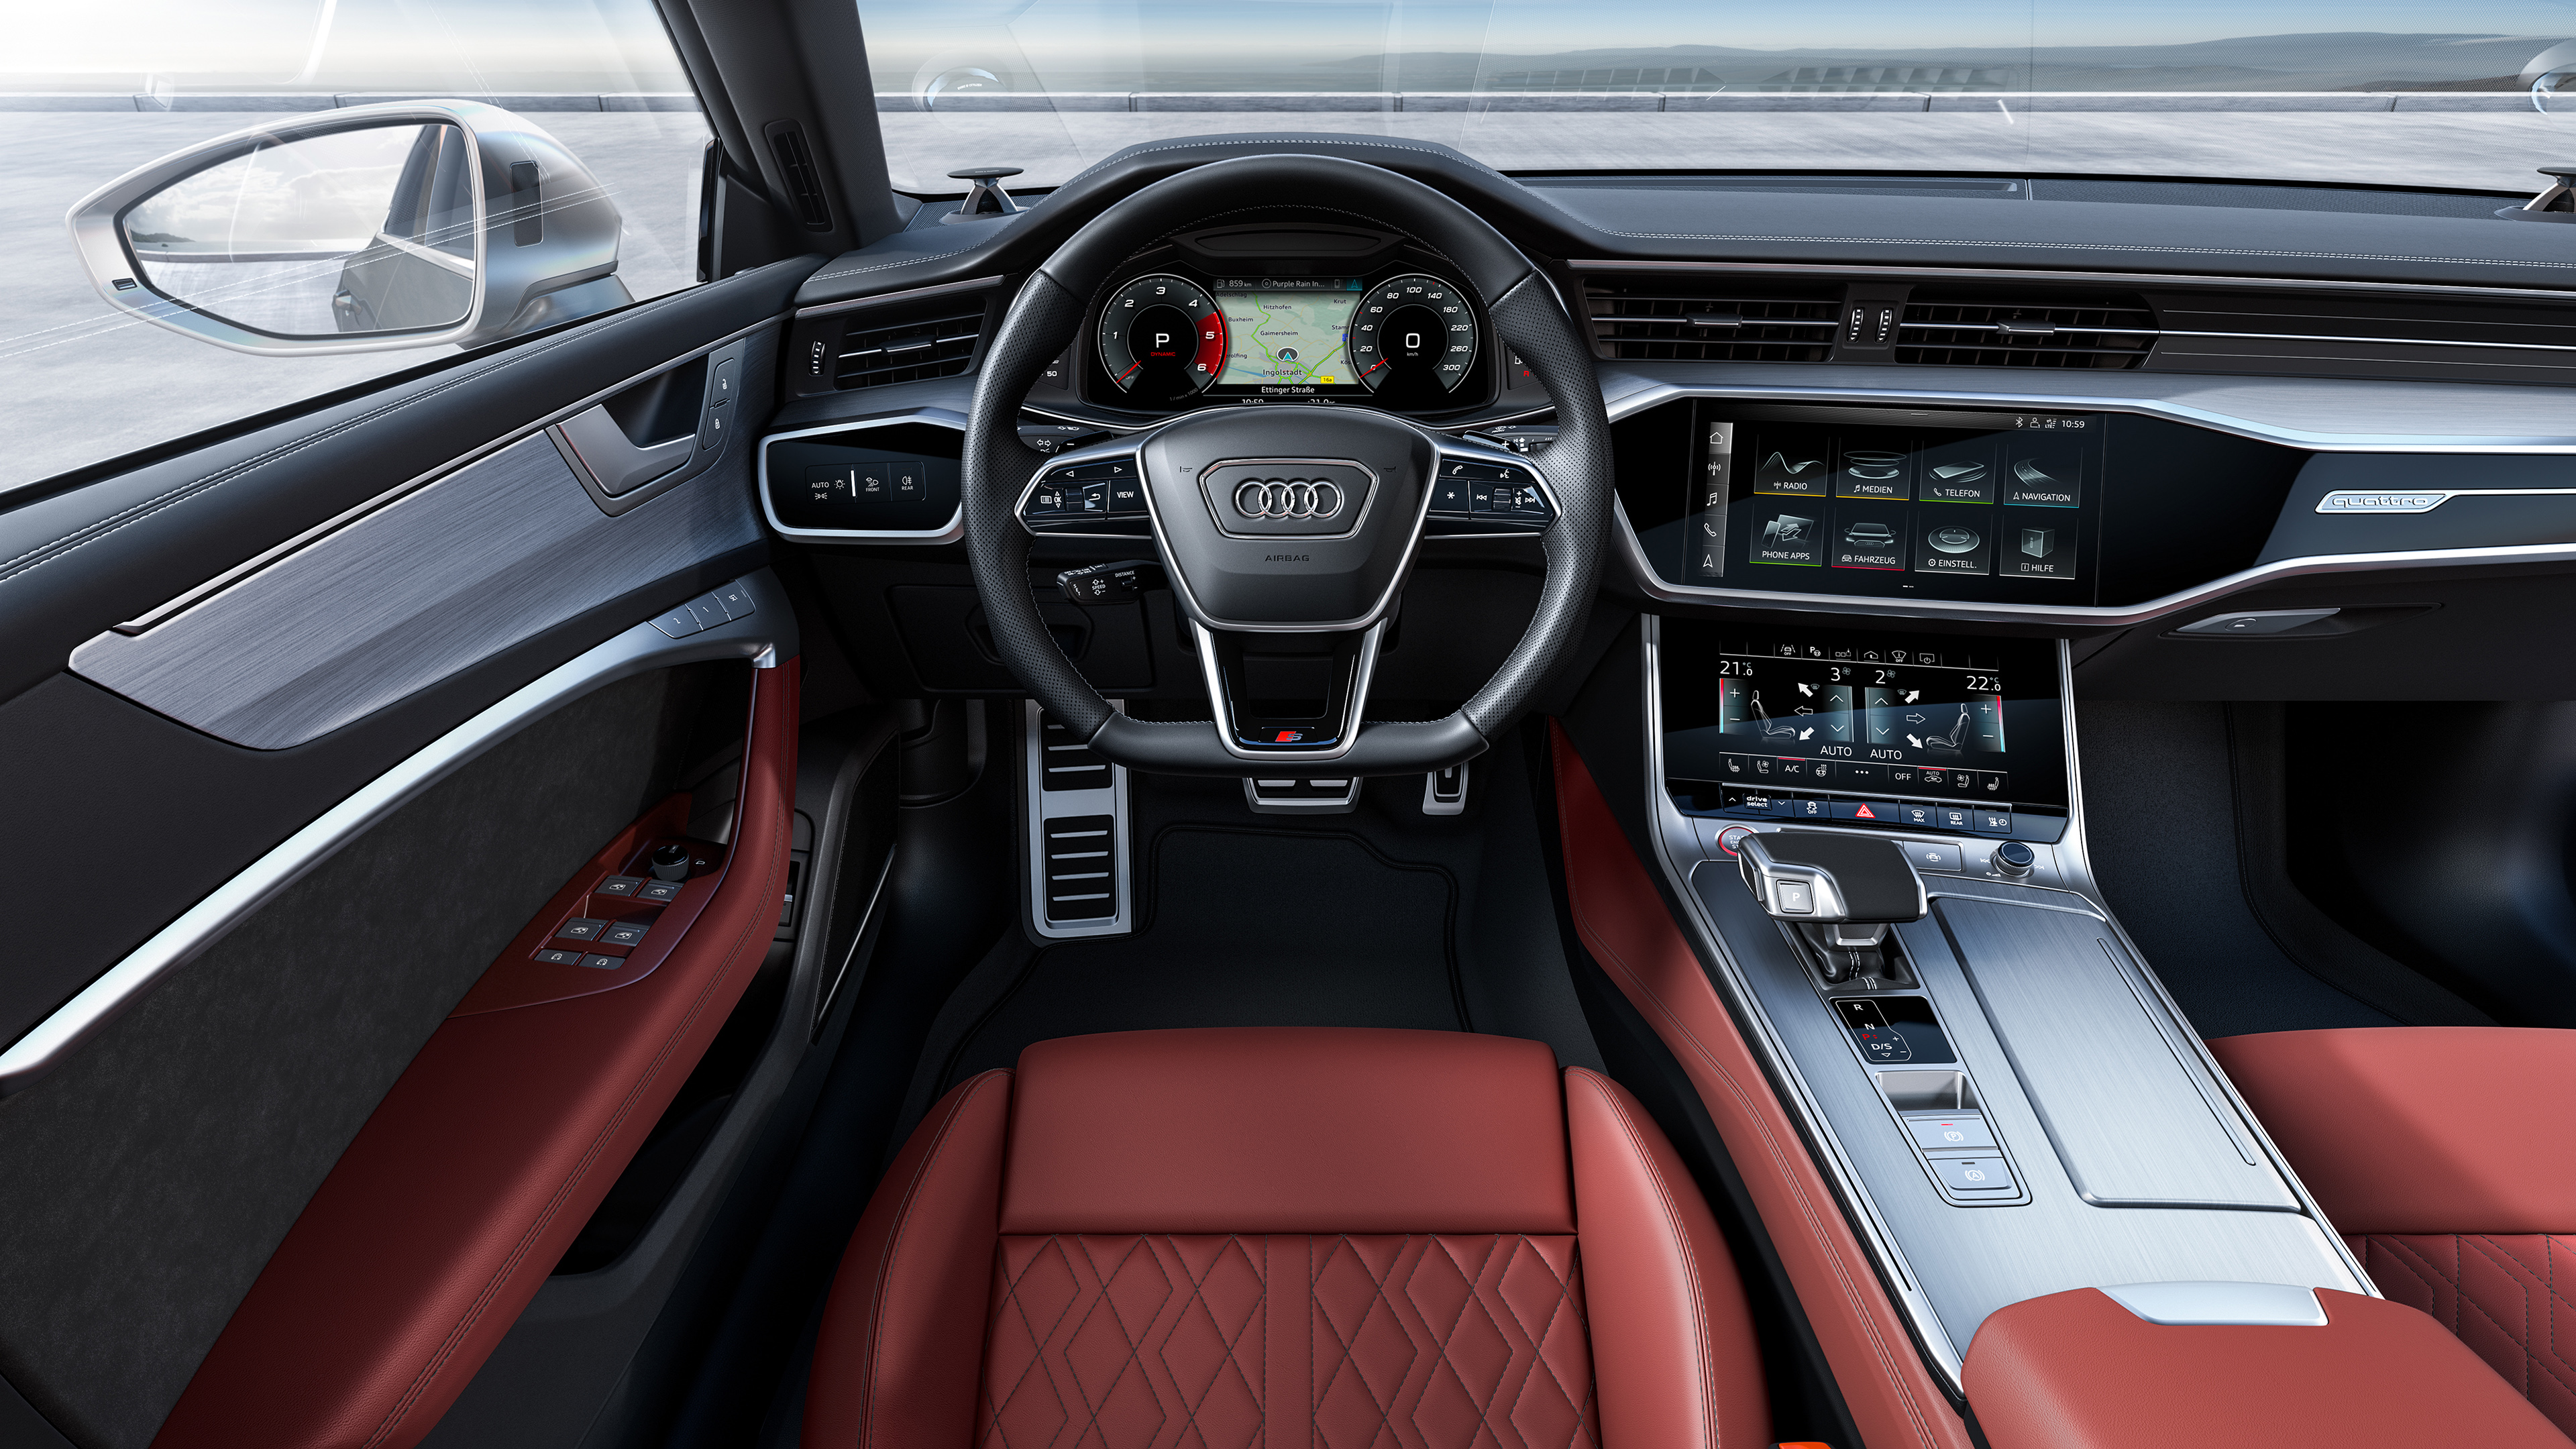 Audi S7 Sportback TDI 2019 4K Interior Wallpaper | HD Car ...